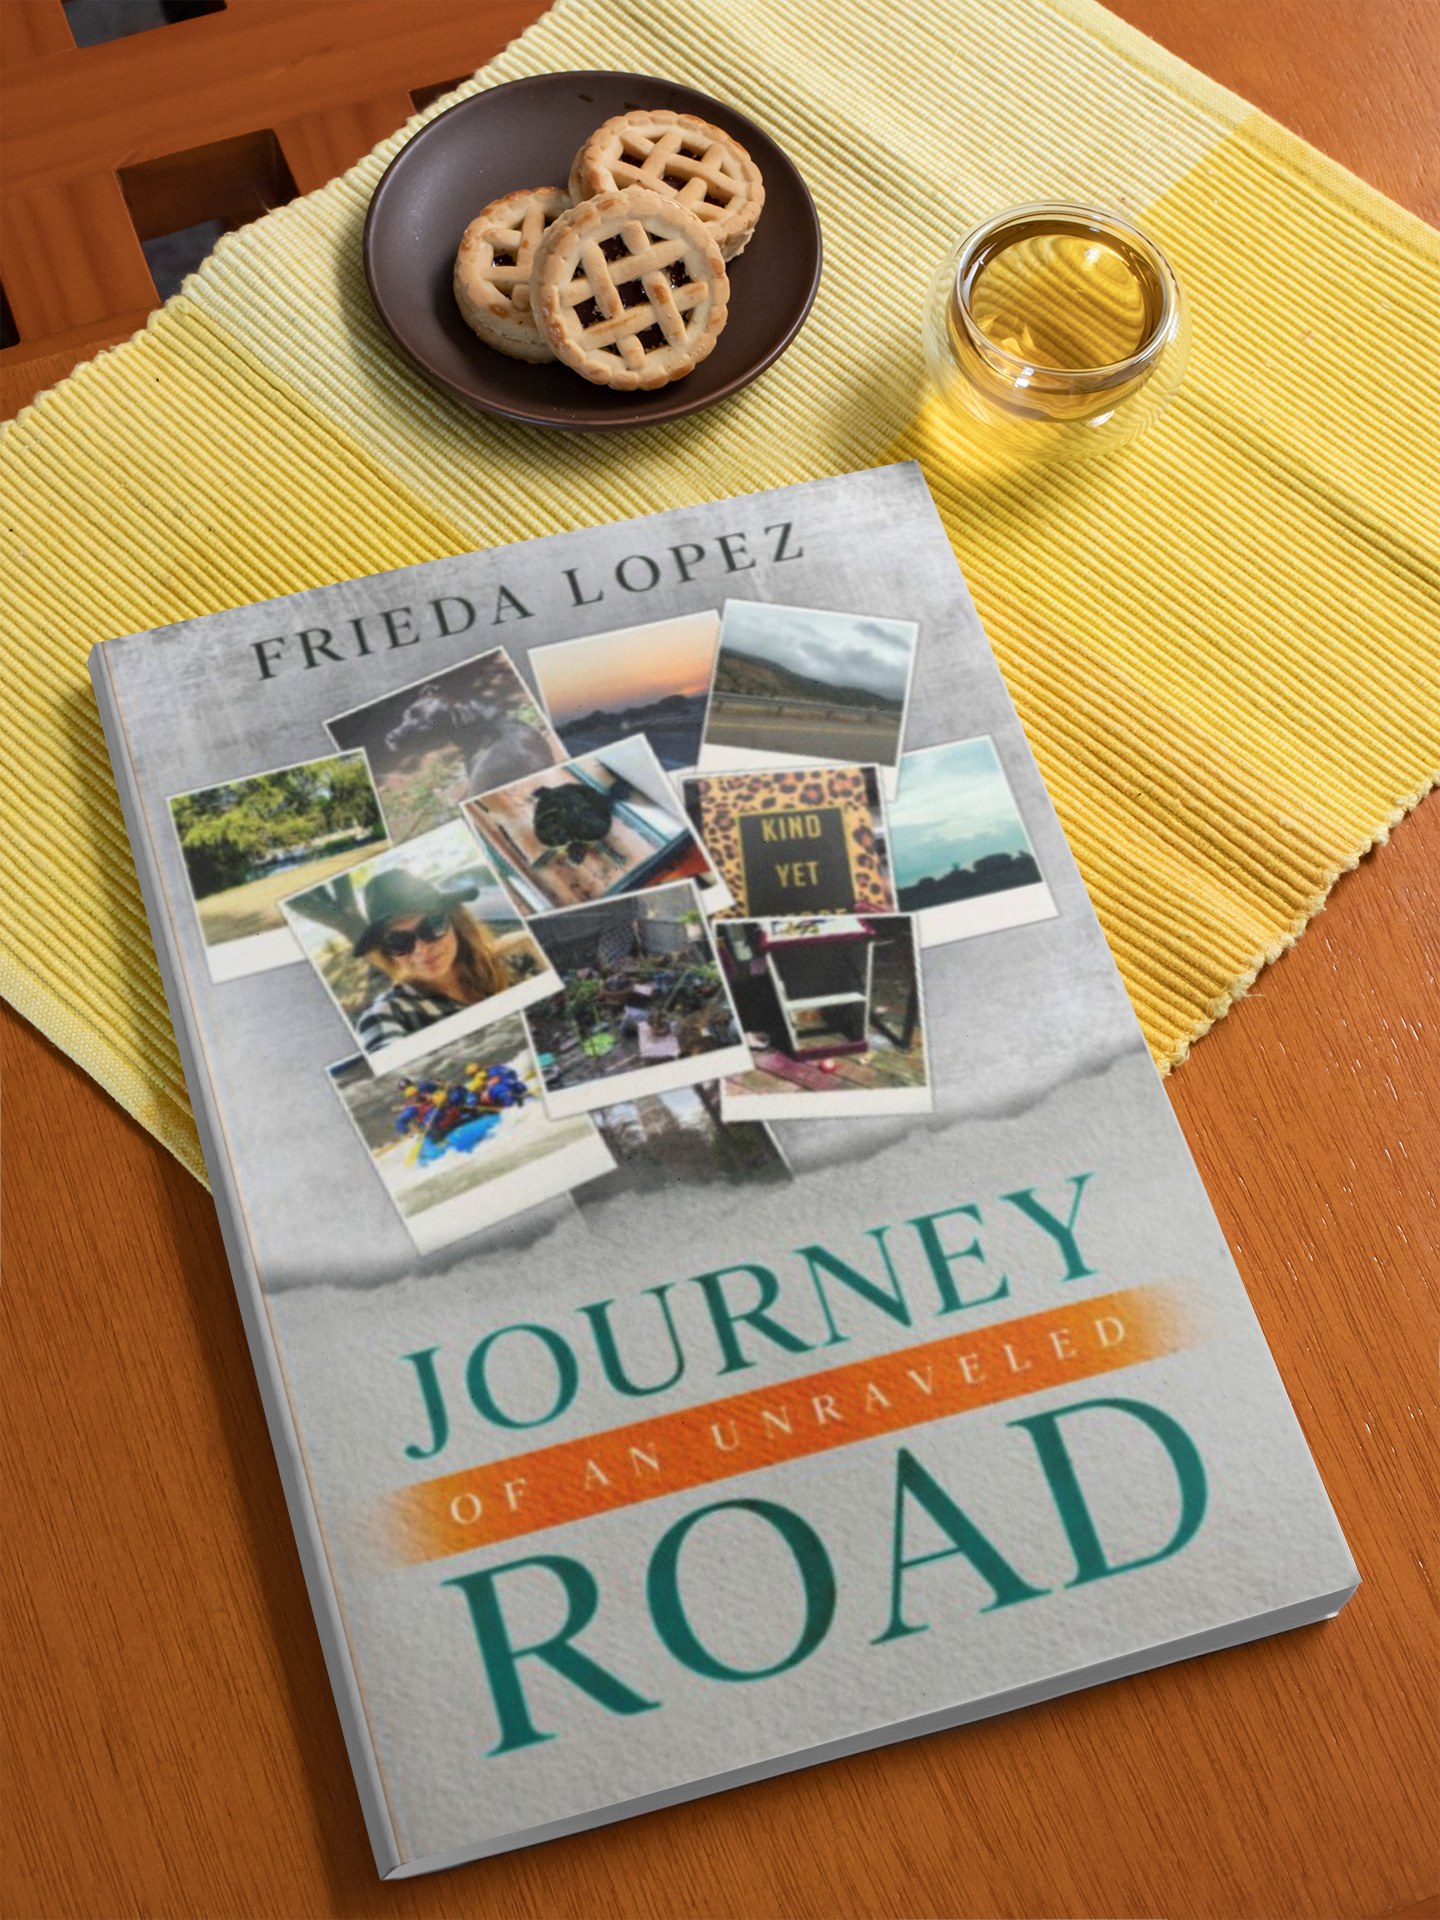 "Author and Former ""American Idol"" Contestant Frieda Lopez Debuts Memoir called ""Journey of an Unraveled Road"""